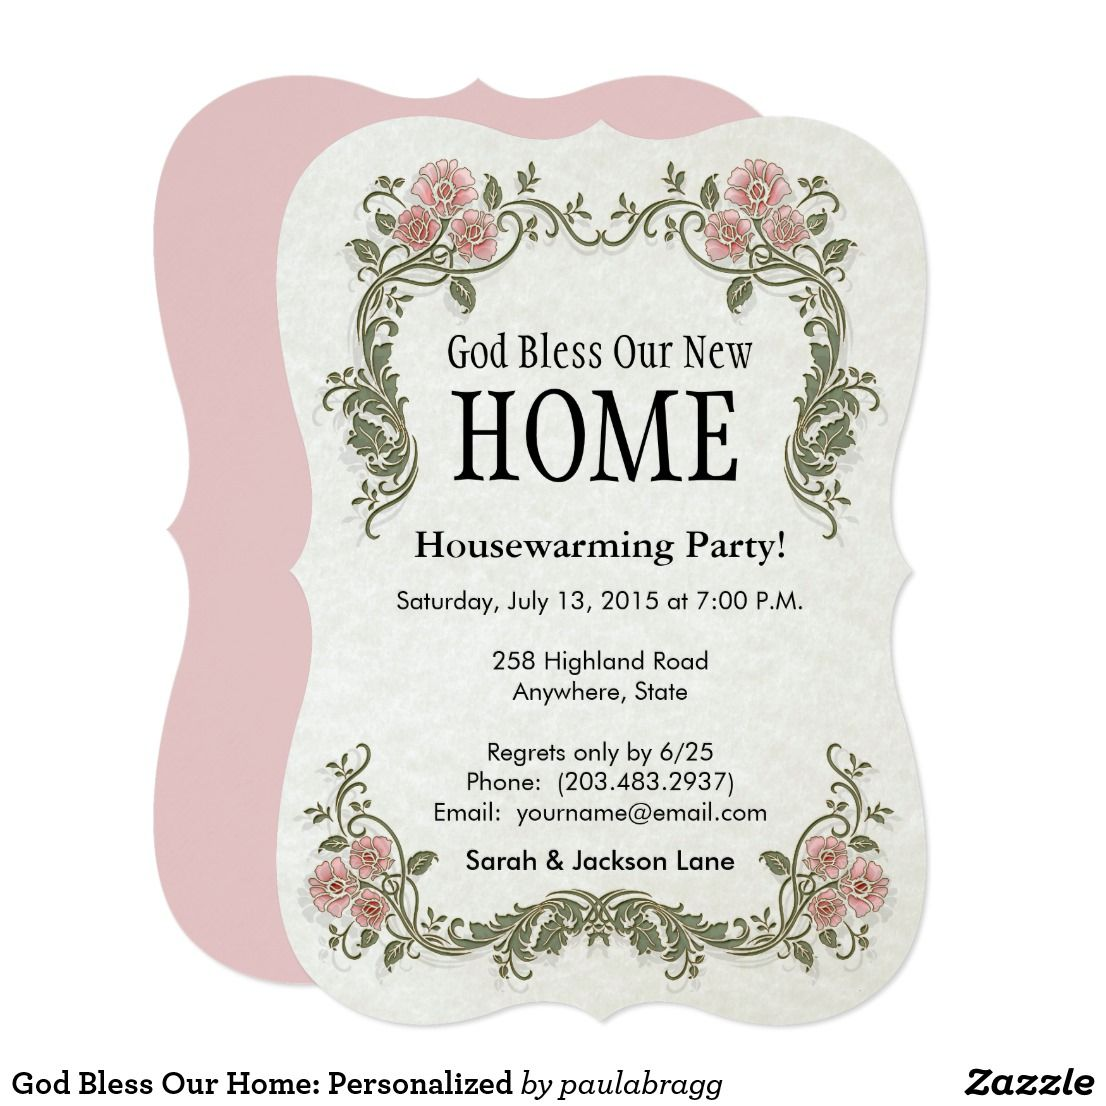 God Bless Our Home Personalized Invitation Zazzle Com